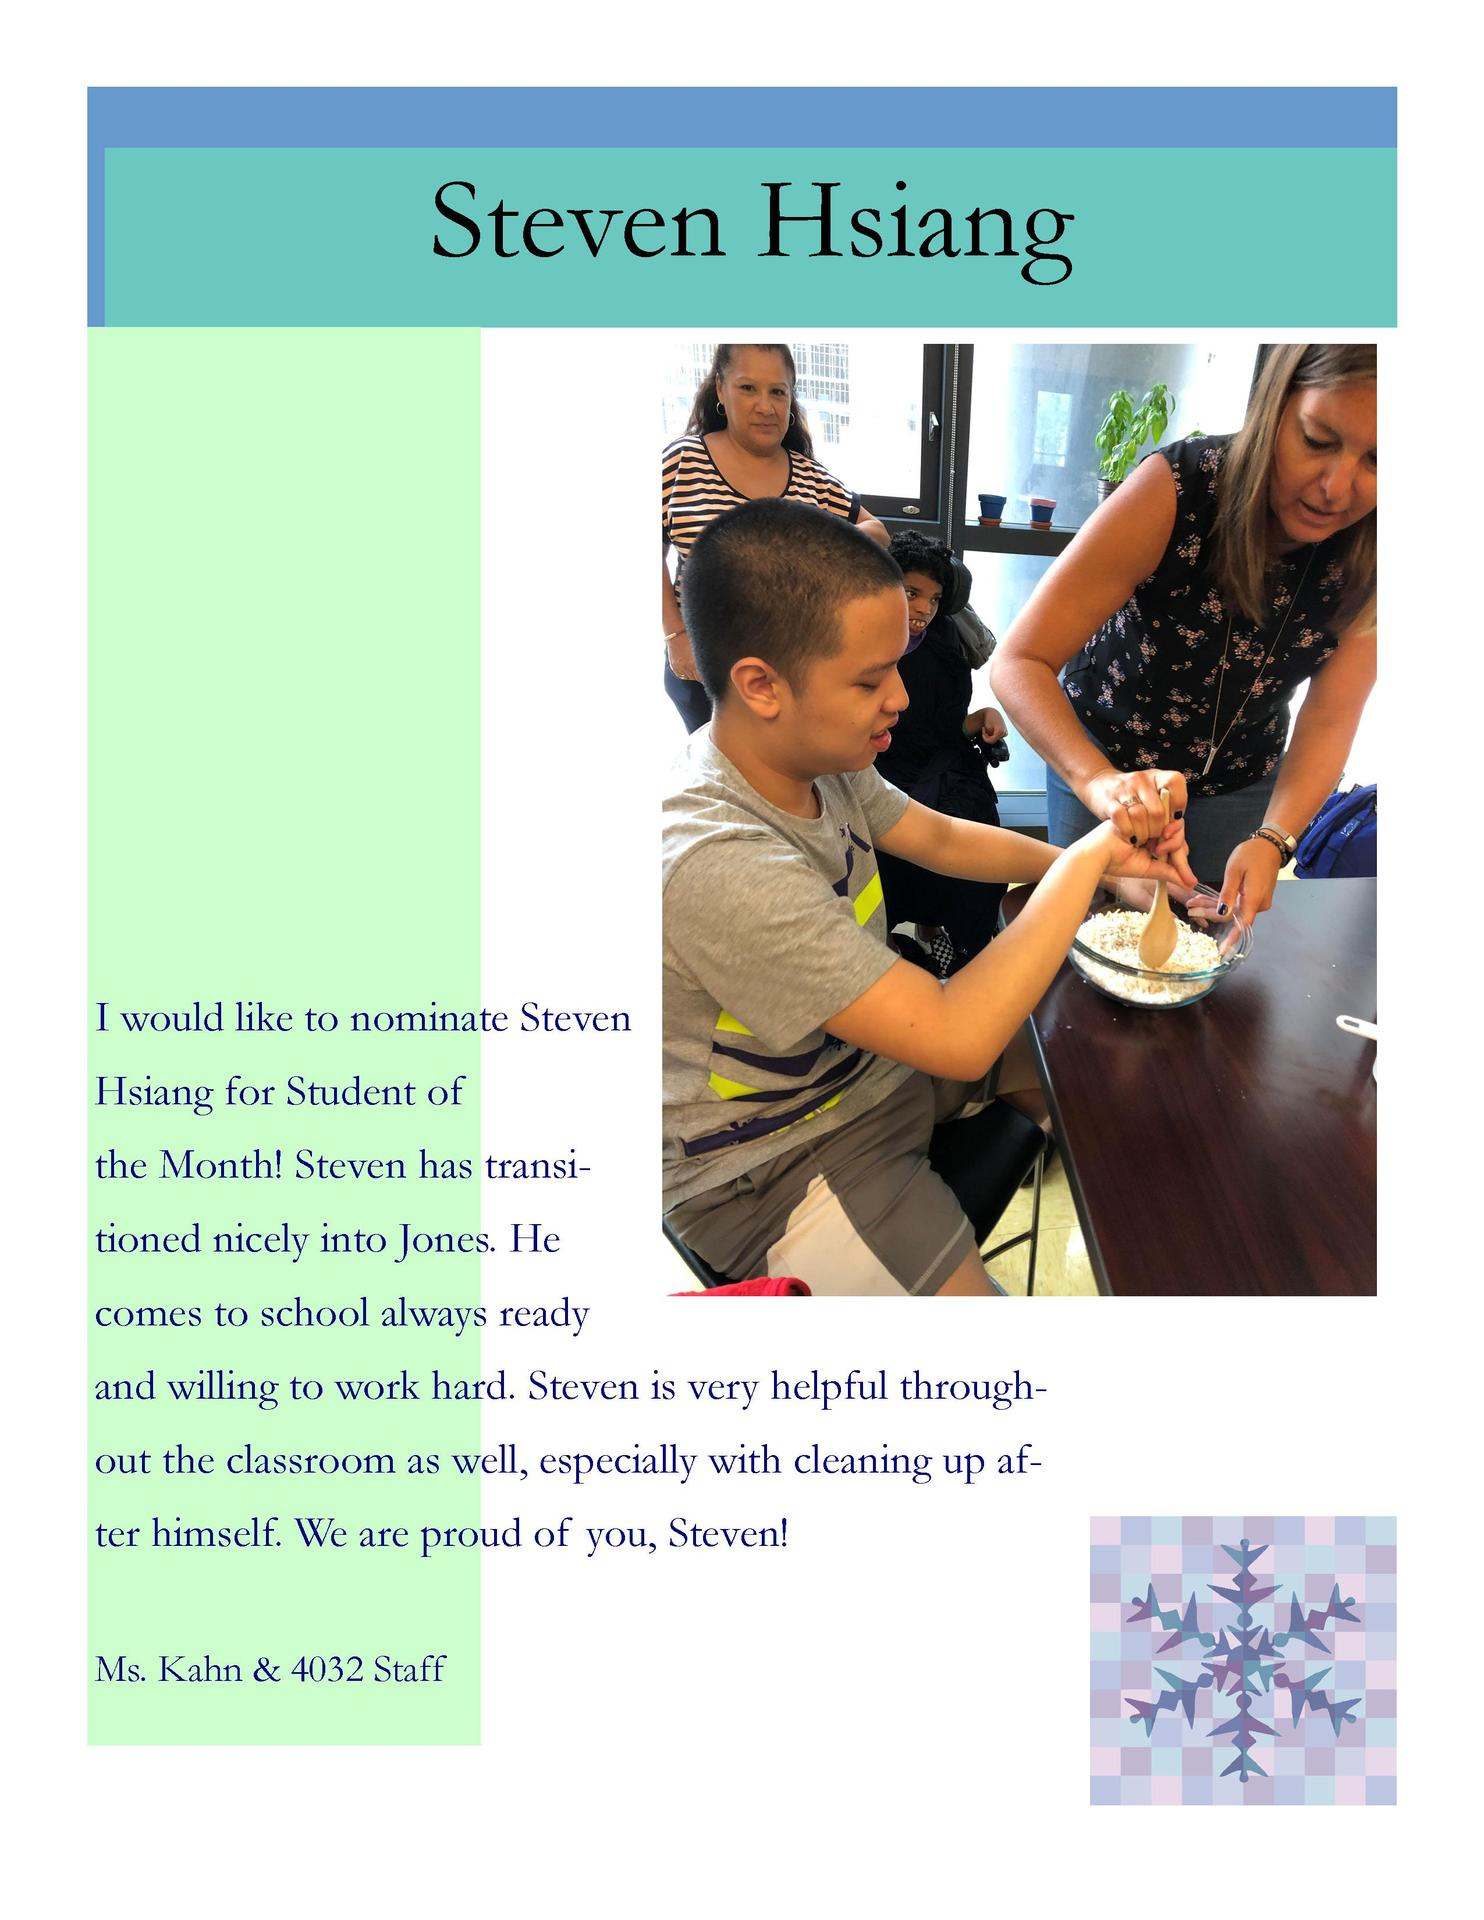 Image of Steven Hsiang